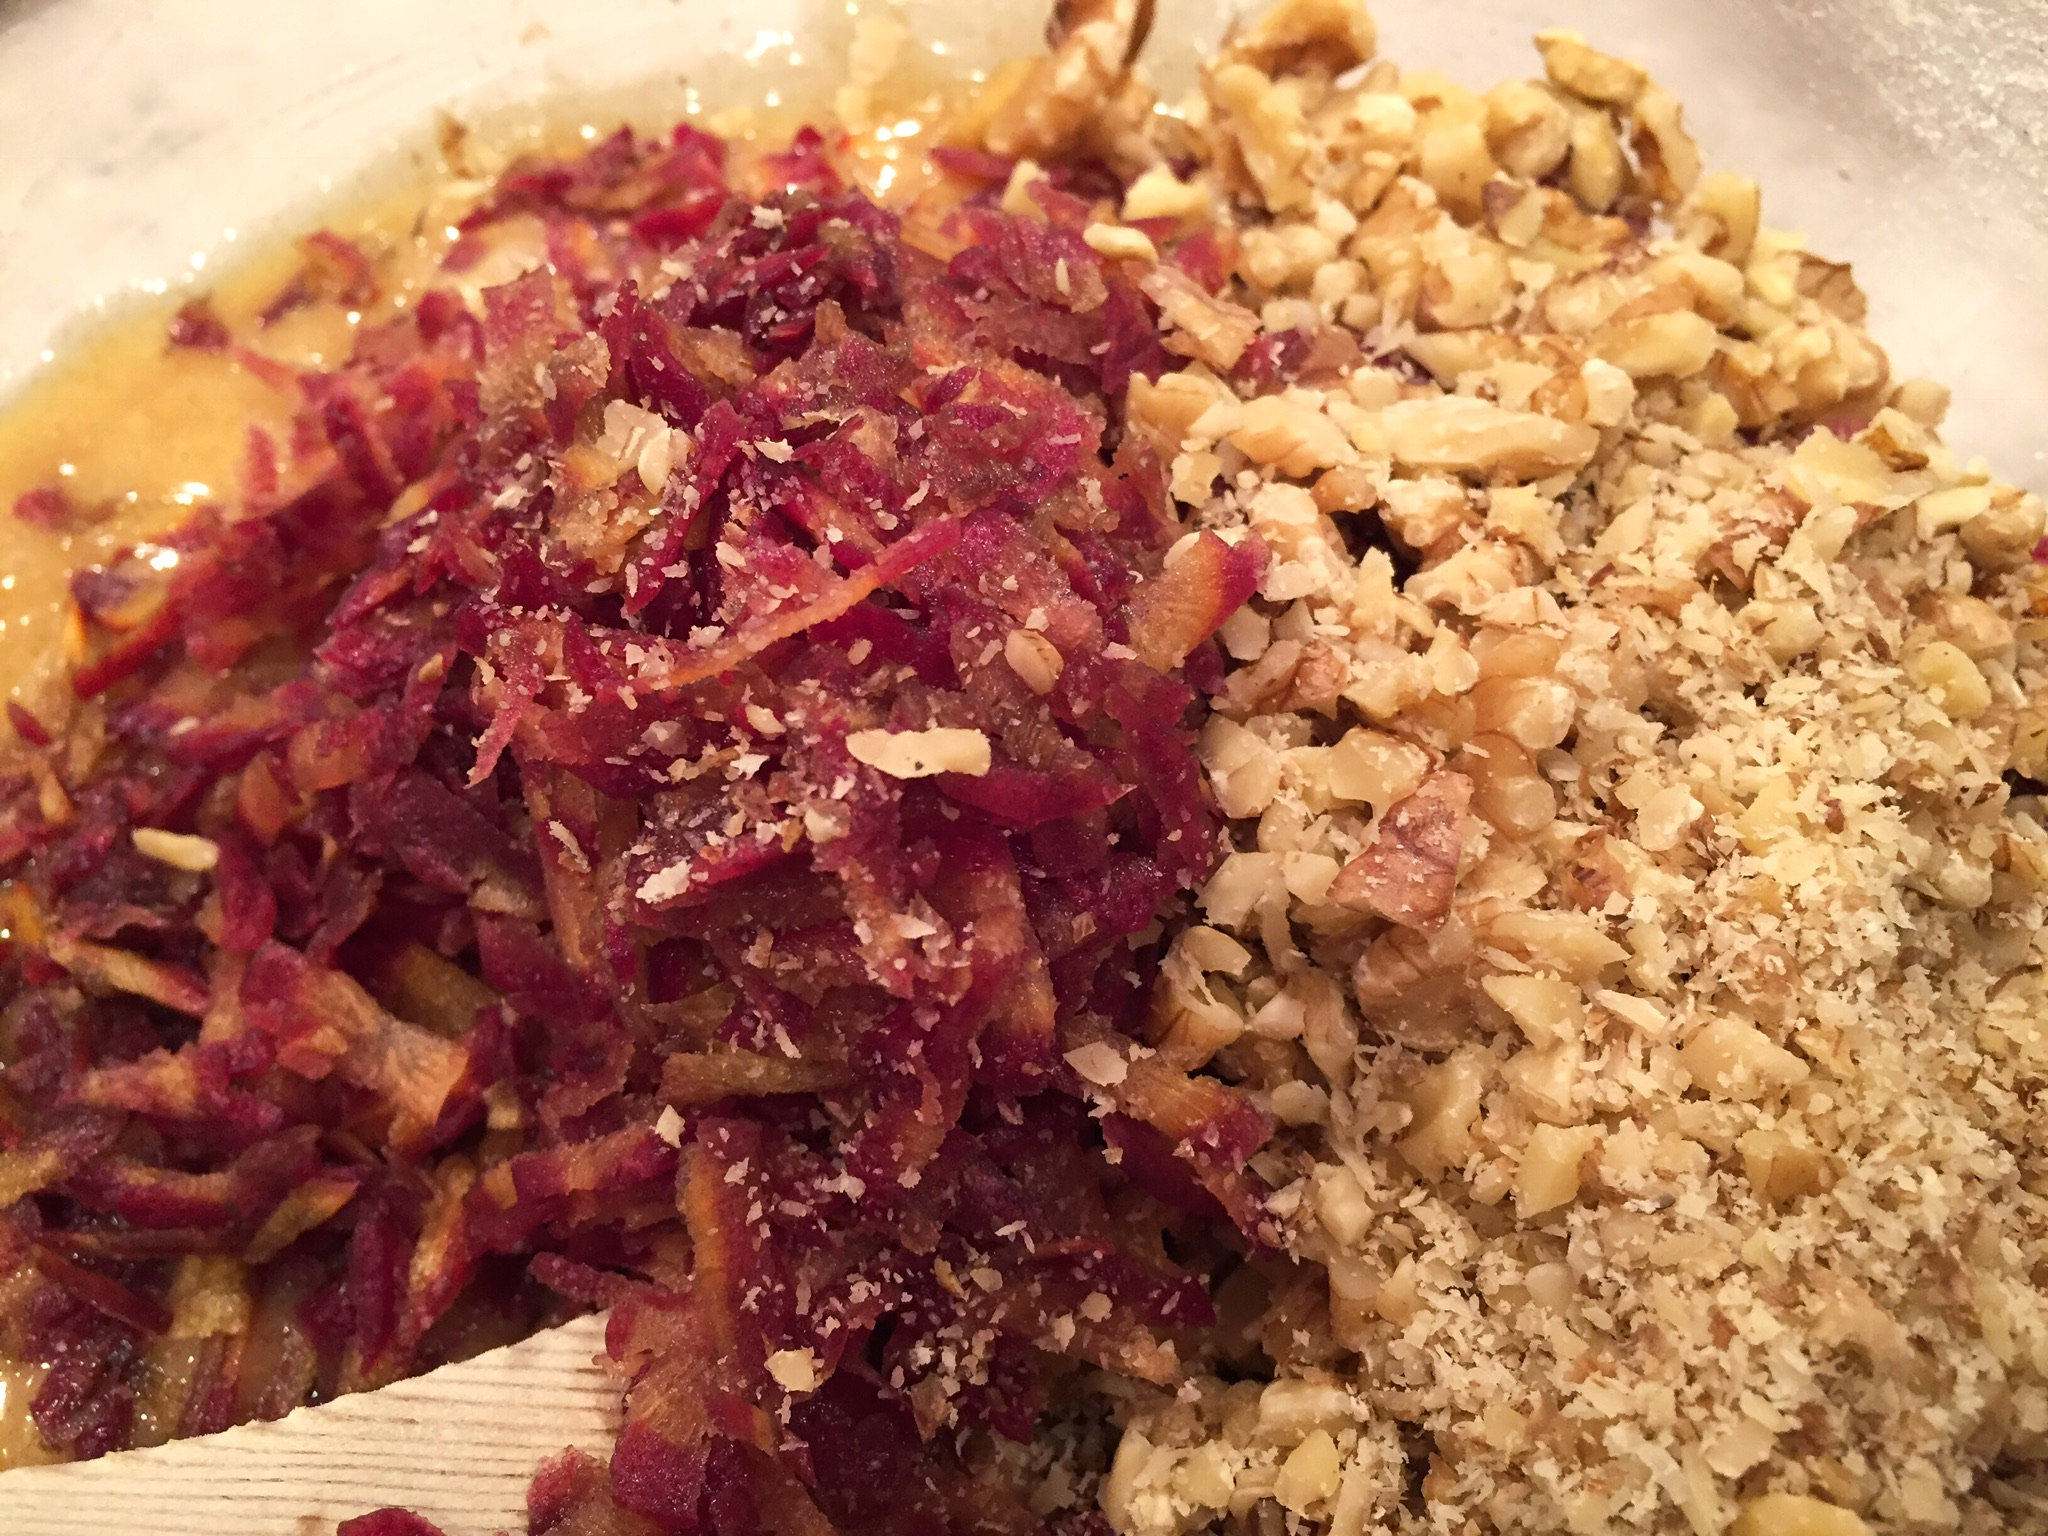 Grated purple carrots and chopped walnuts